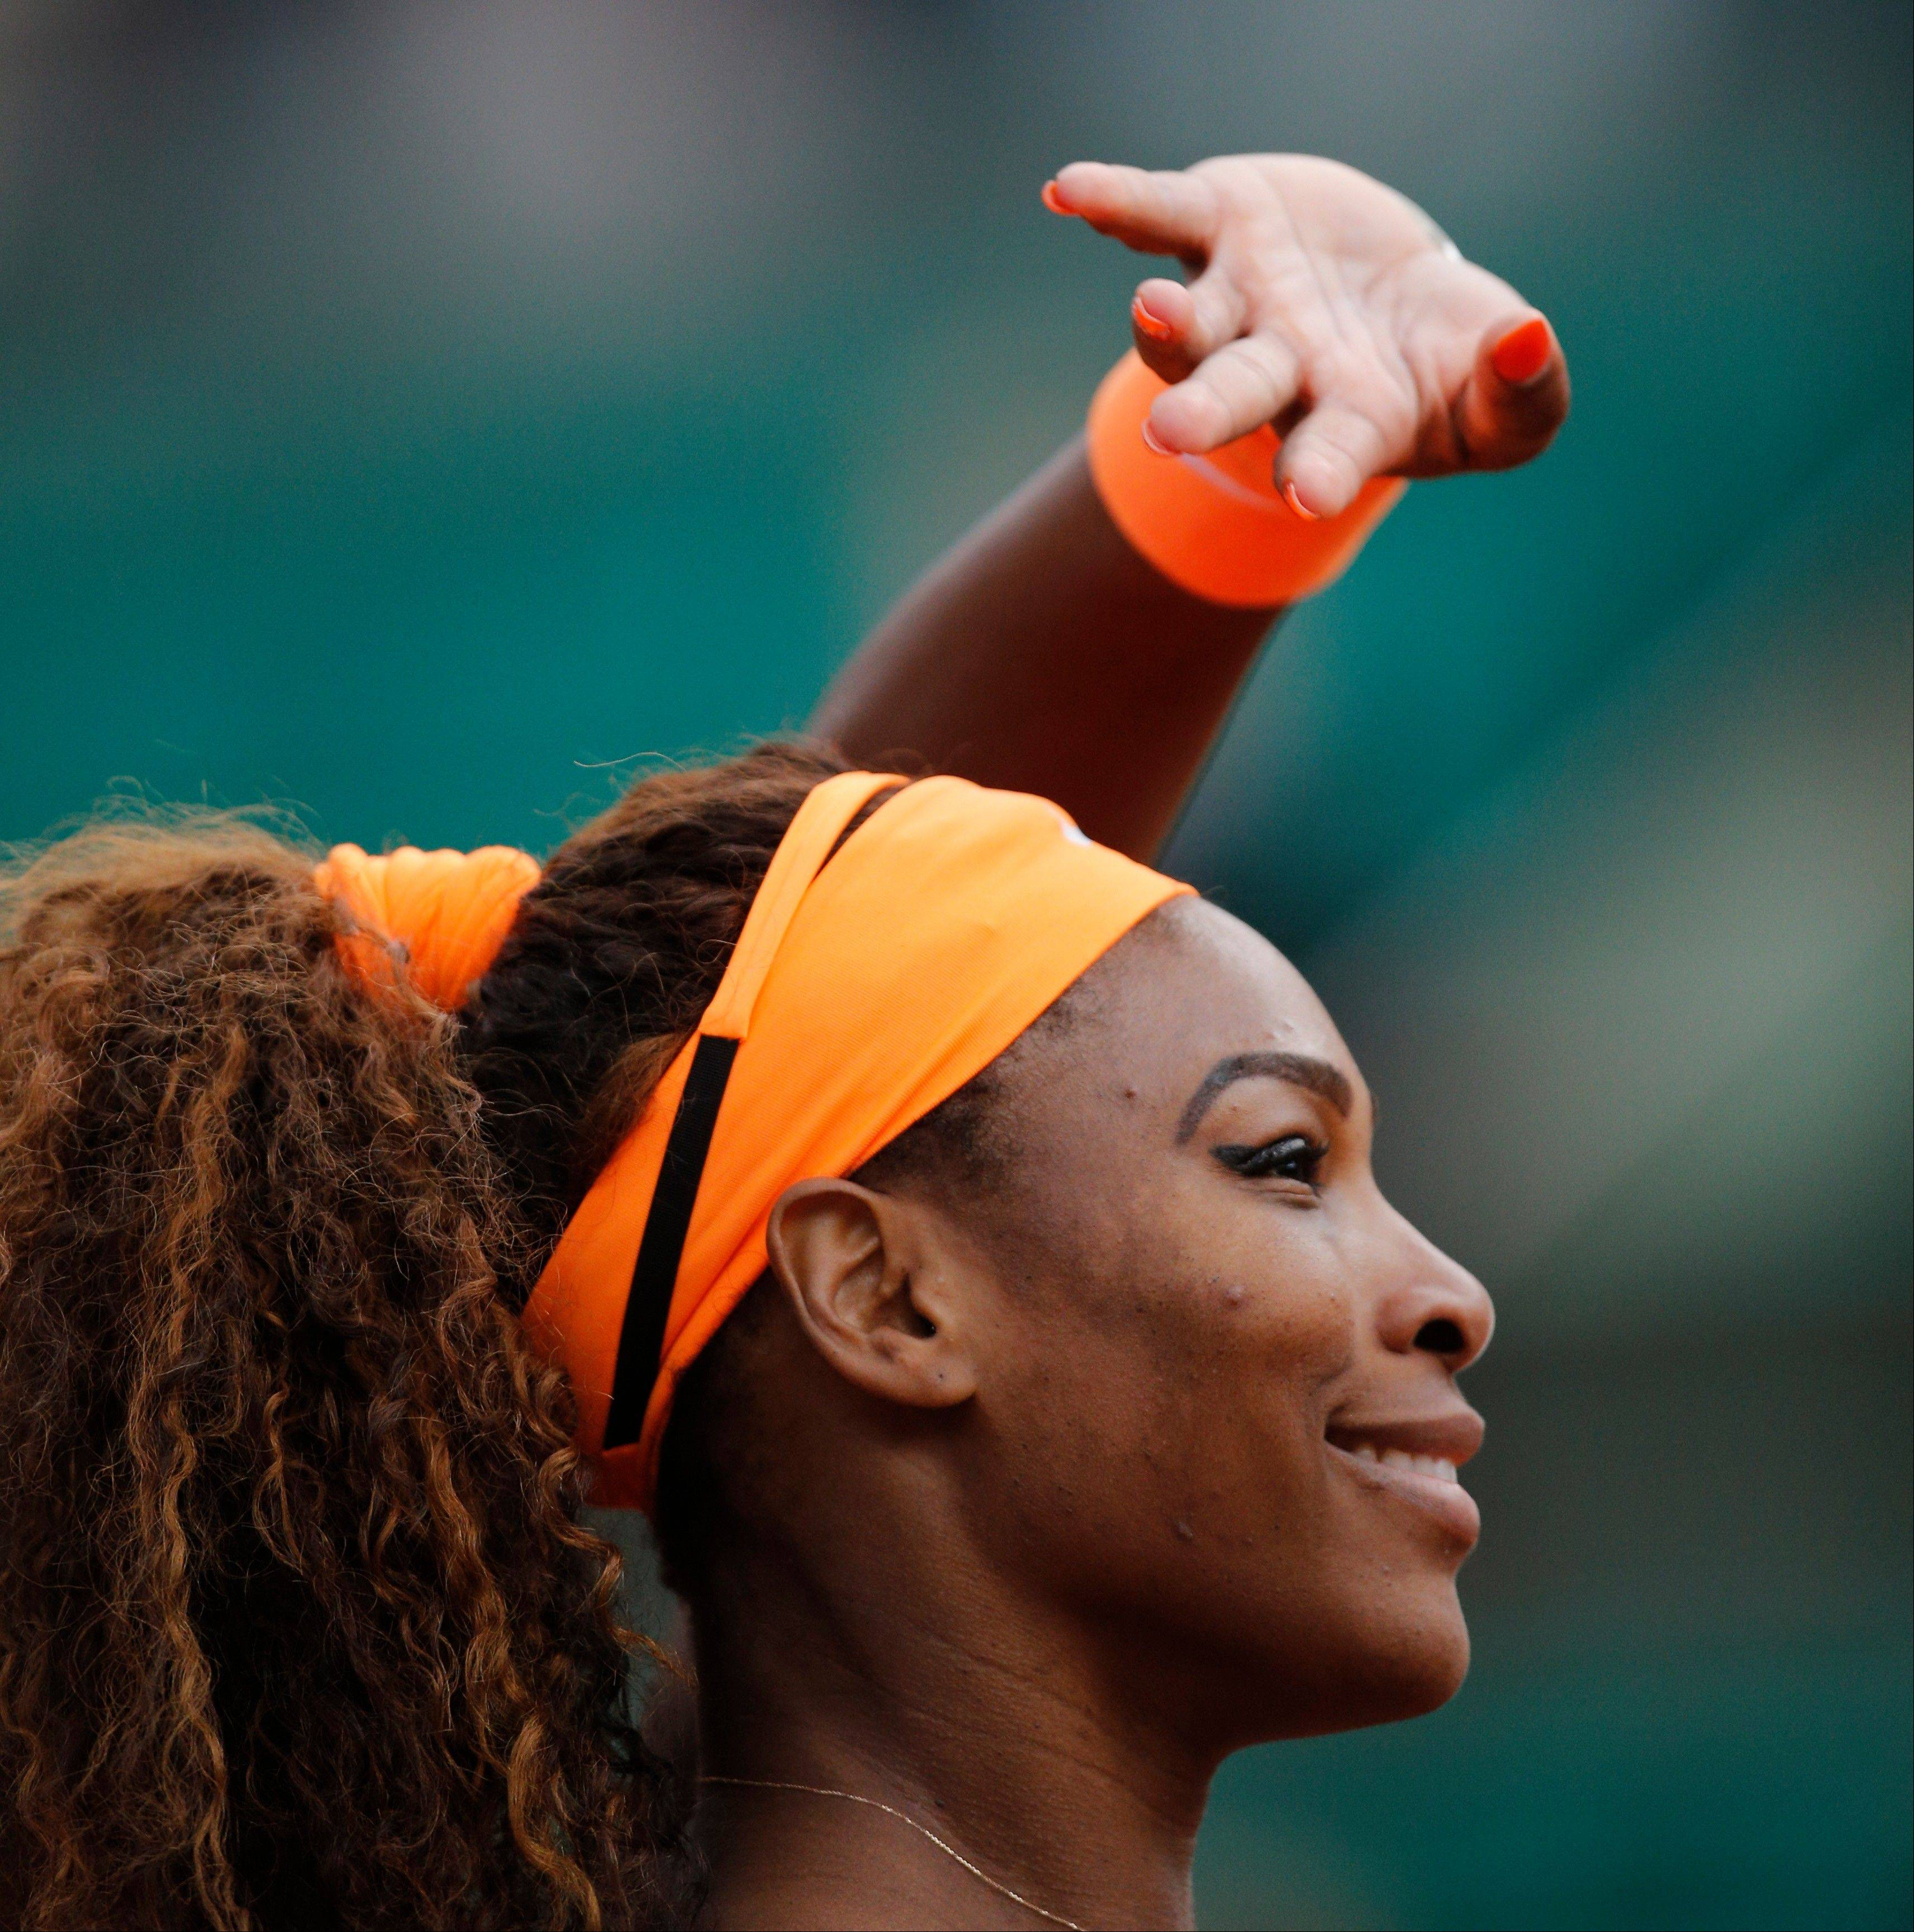 Serena Williams of the U.S. greets spectators after defeating Caroline Garcia of France in their second round match of the French Open tennis tournament, at Roland Garros stadium in Paris, Wednesday, May 29, 2013. Williams won in two sets 6-1, 6-2.